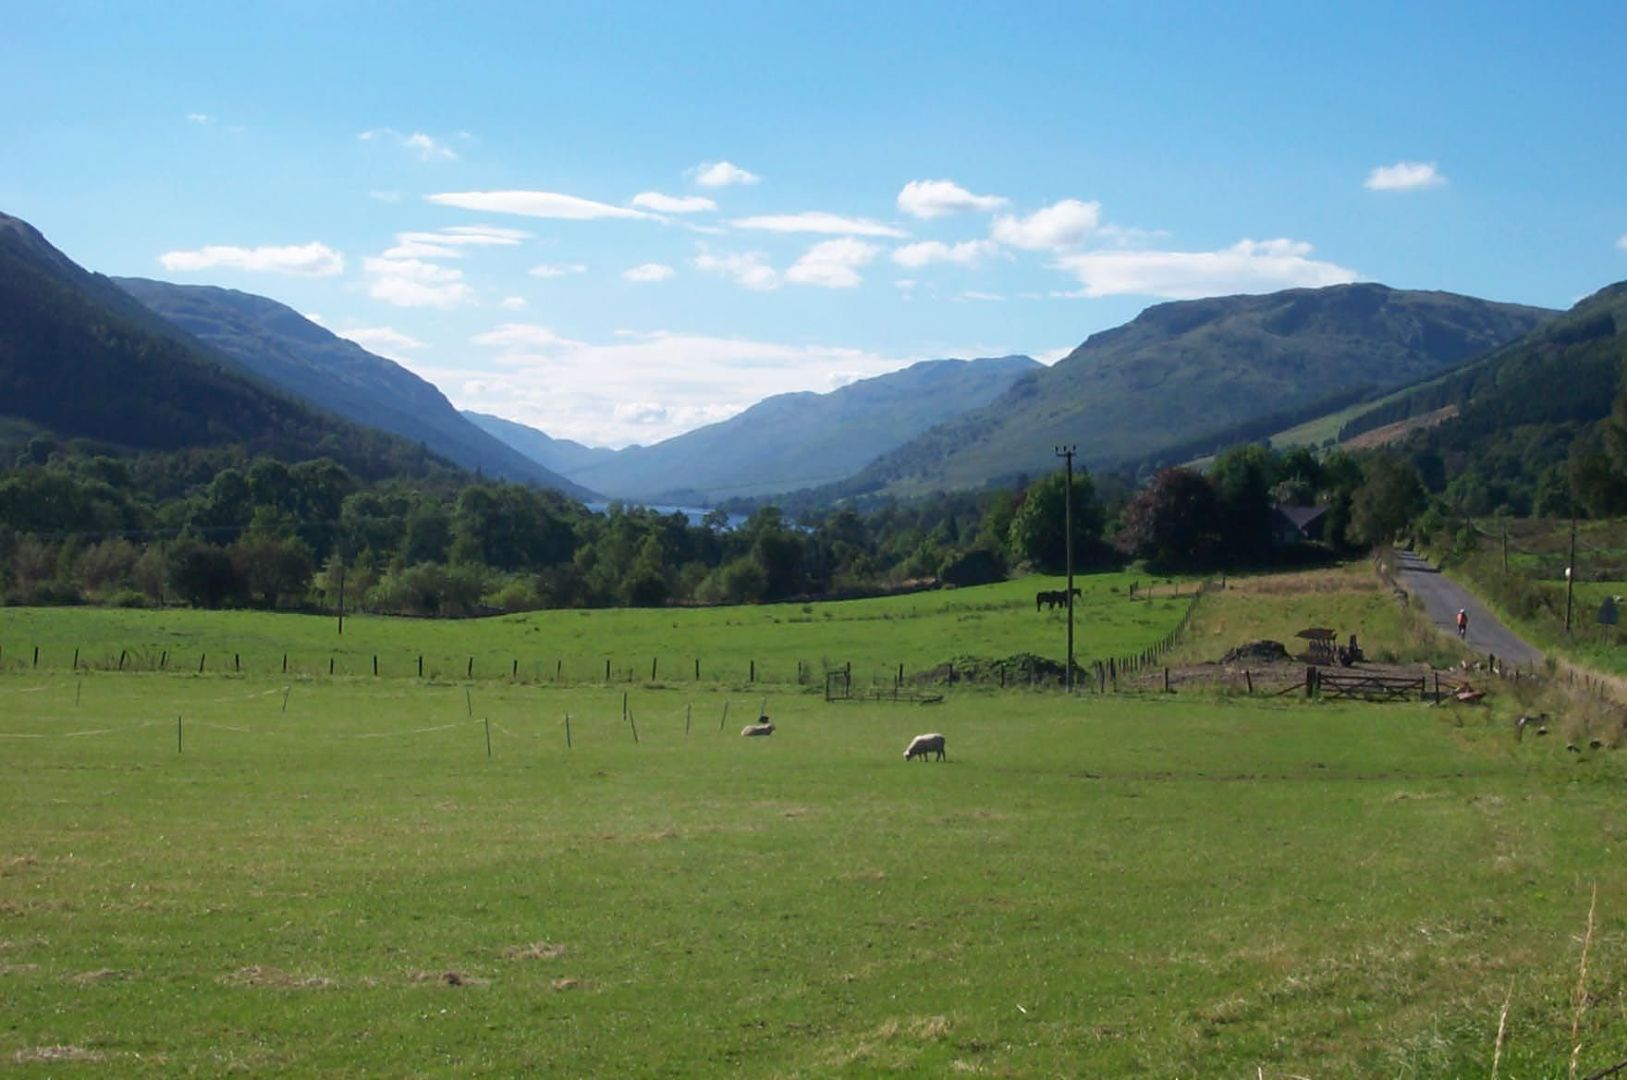 lochs n glens.jpg - UK - Scotland - Lochs and Glens - Self-Guided Family Cycling Holiday - Family Cycling